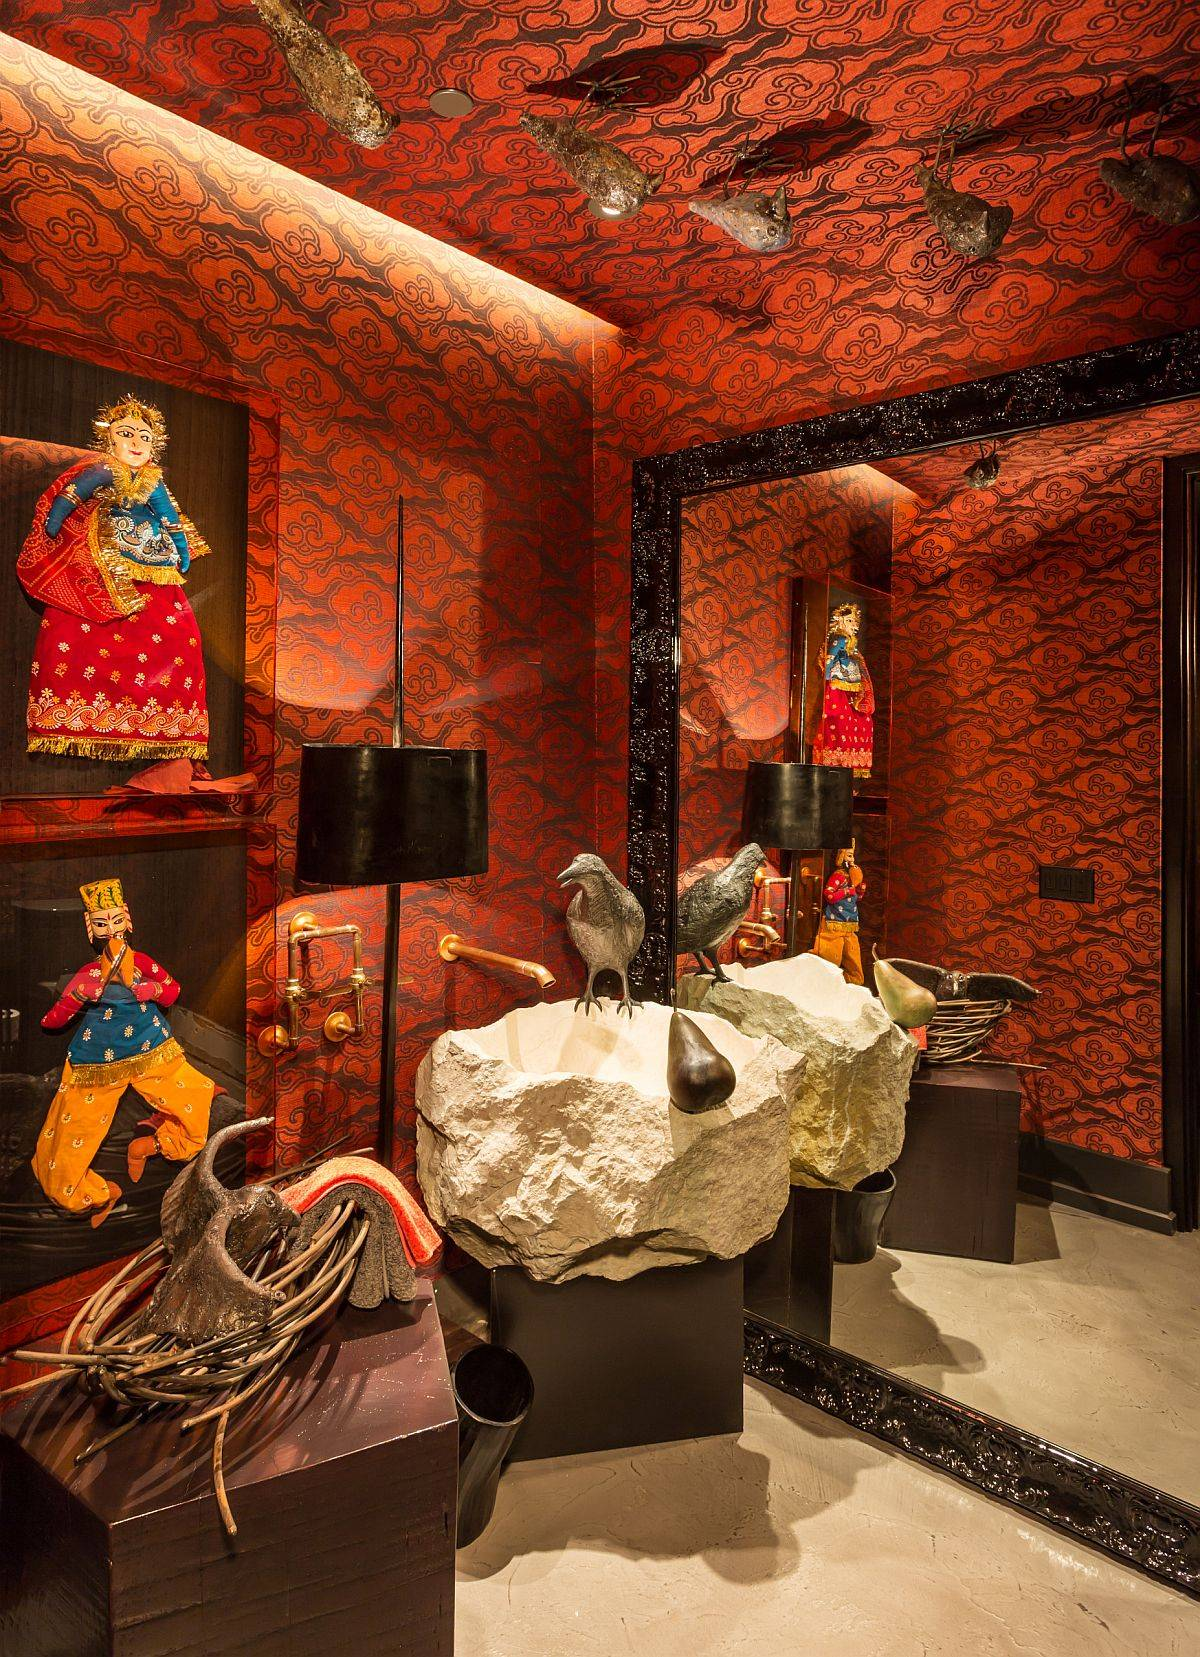 Eye-catching-orange-wallapaper-custom-stone-sink-and-puppet-artwork-with-Indian-theme-shape-a-truly-unique-eclectic-powder-room-28859